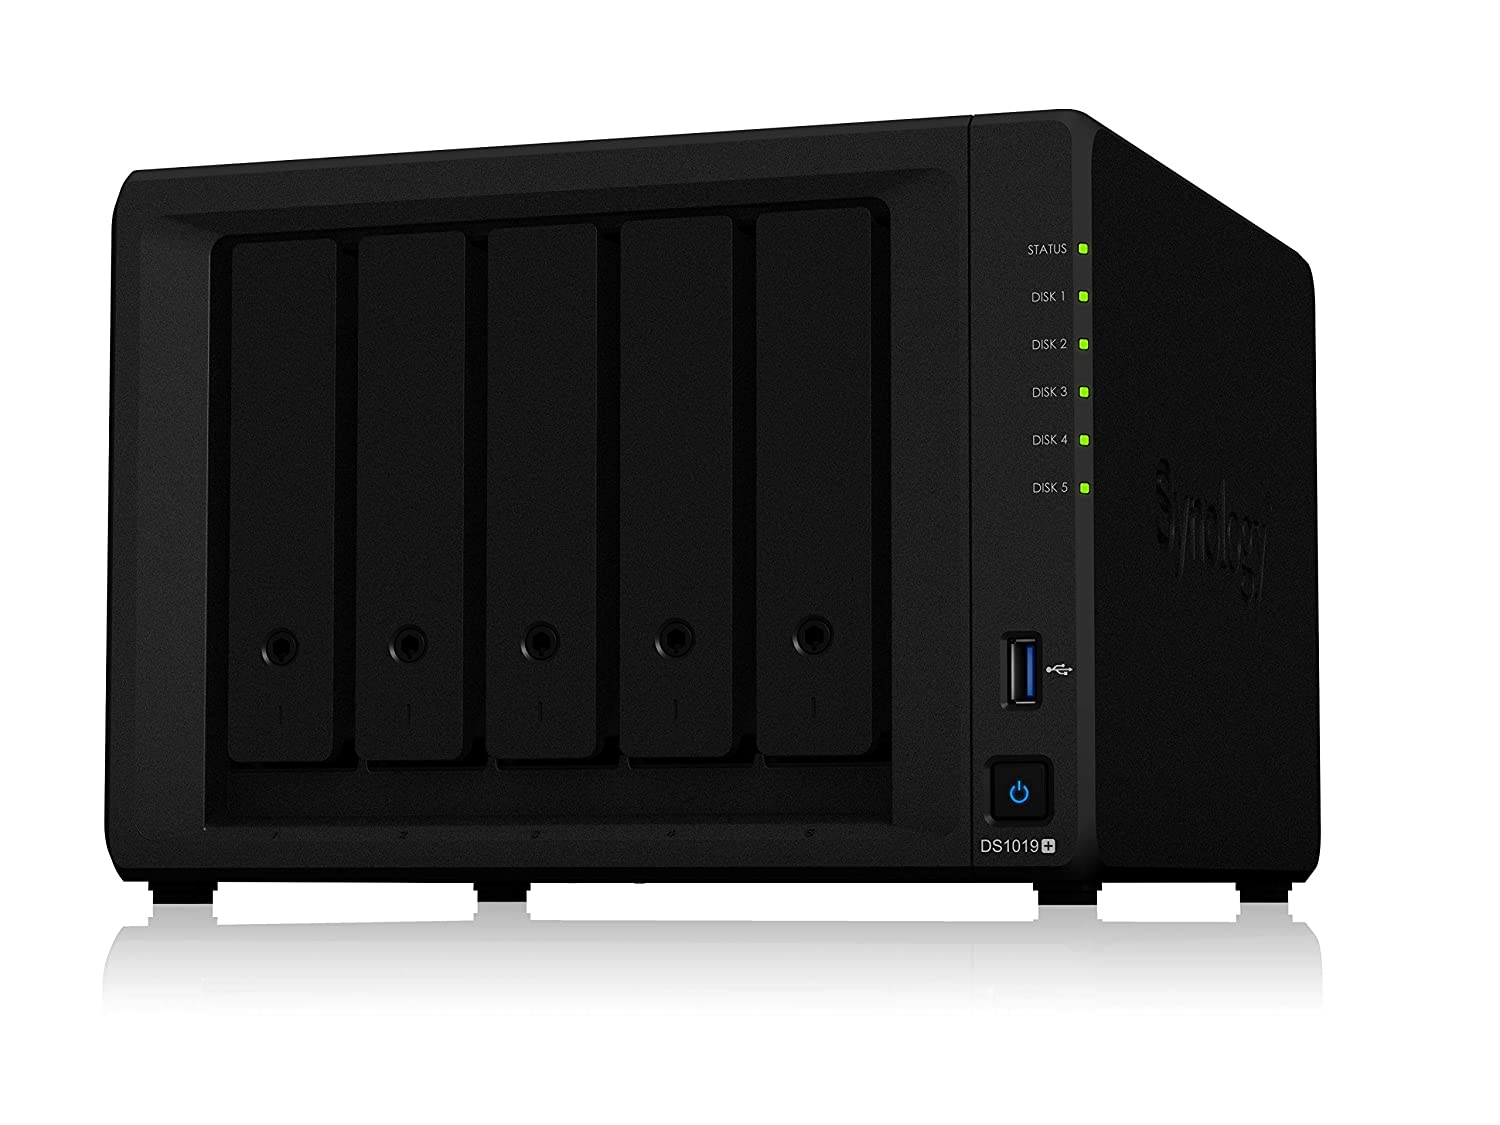 Synology 5 bay NAS DiskStation DS1019+ (Diskless)